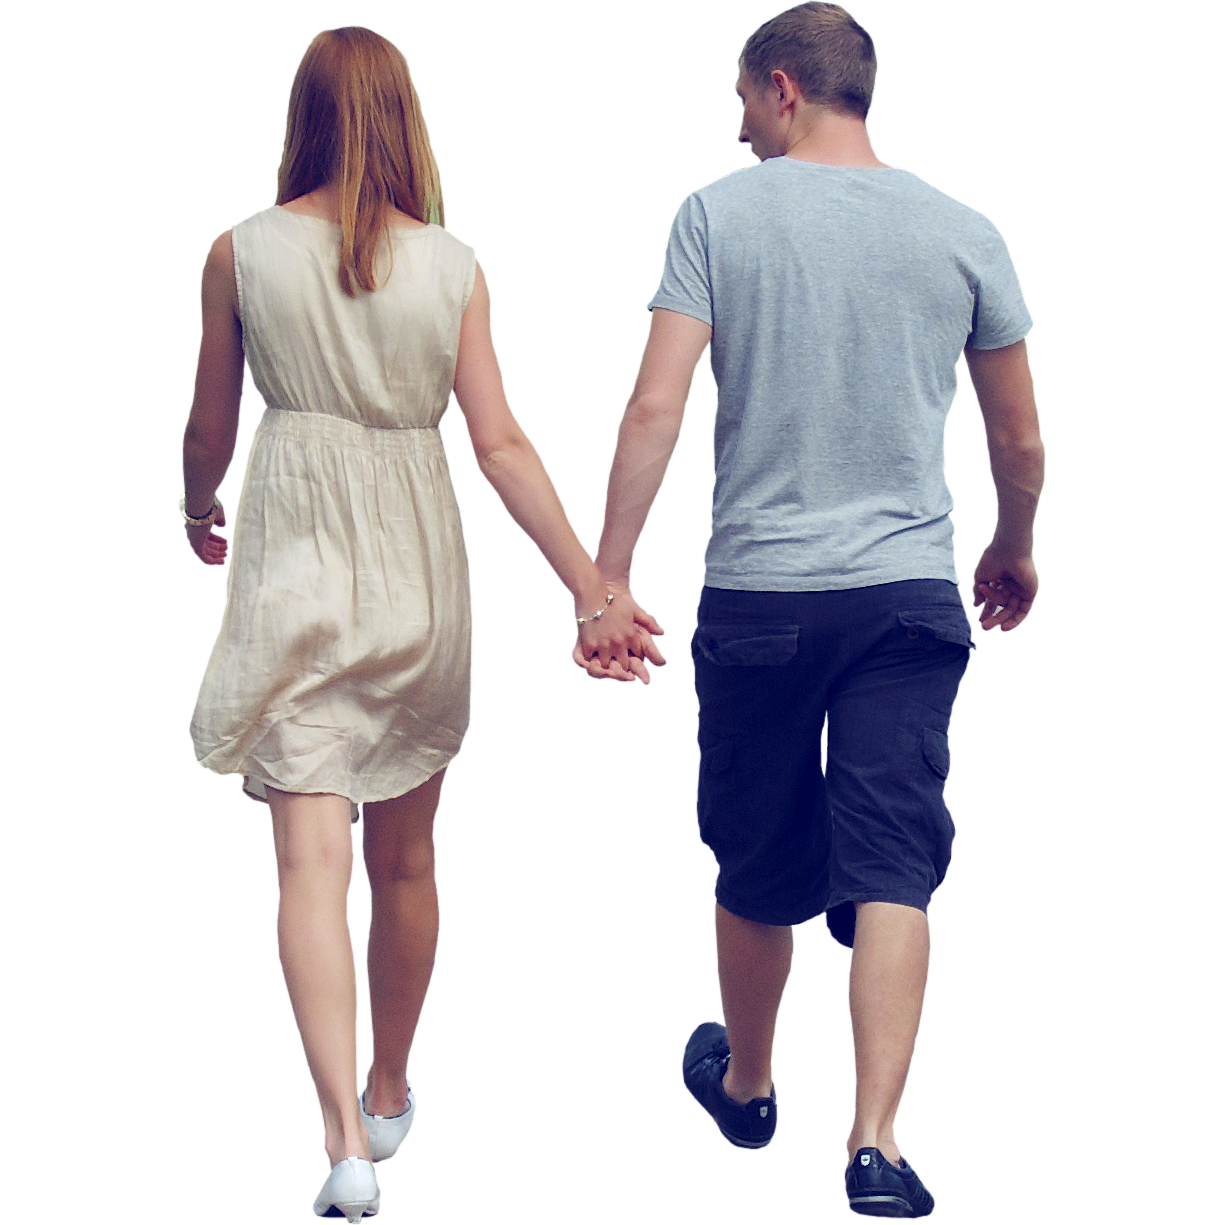 Couple Transparent PNG Image - Couple PNG HD